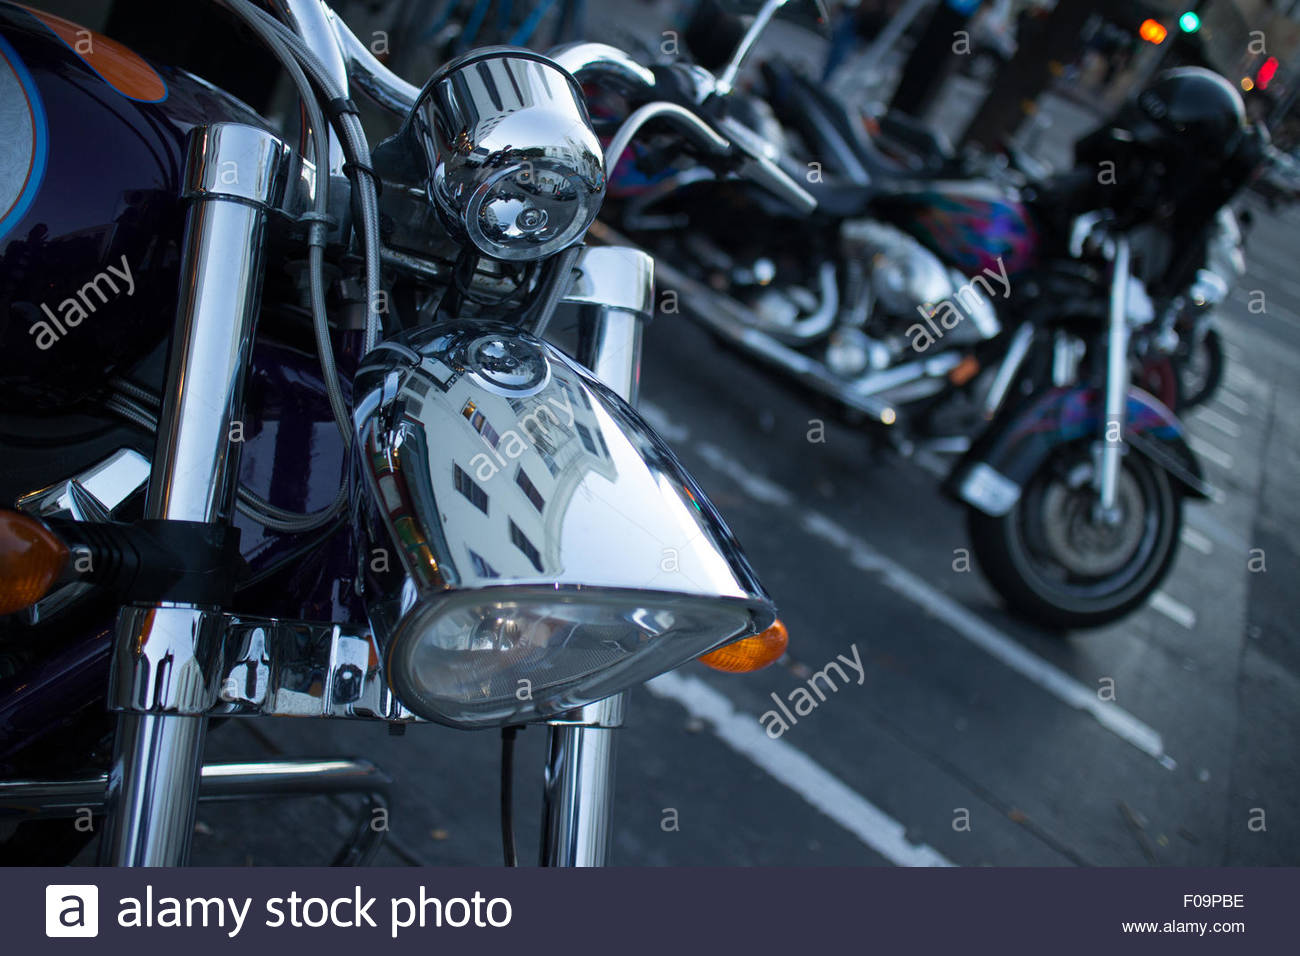 Detail of chrome headlamp on a cruiser style motorcycle in San Francisco, California. - Stock Image